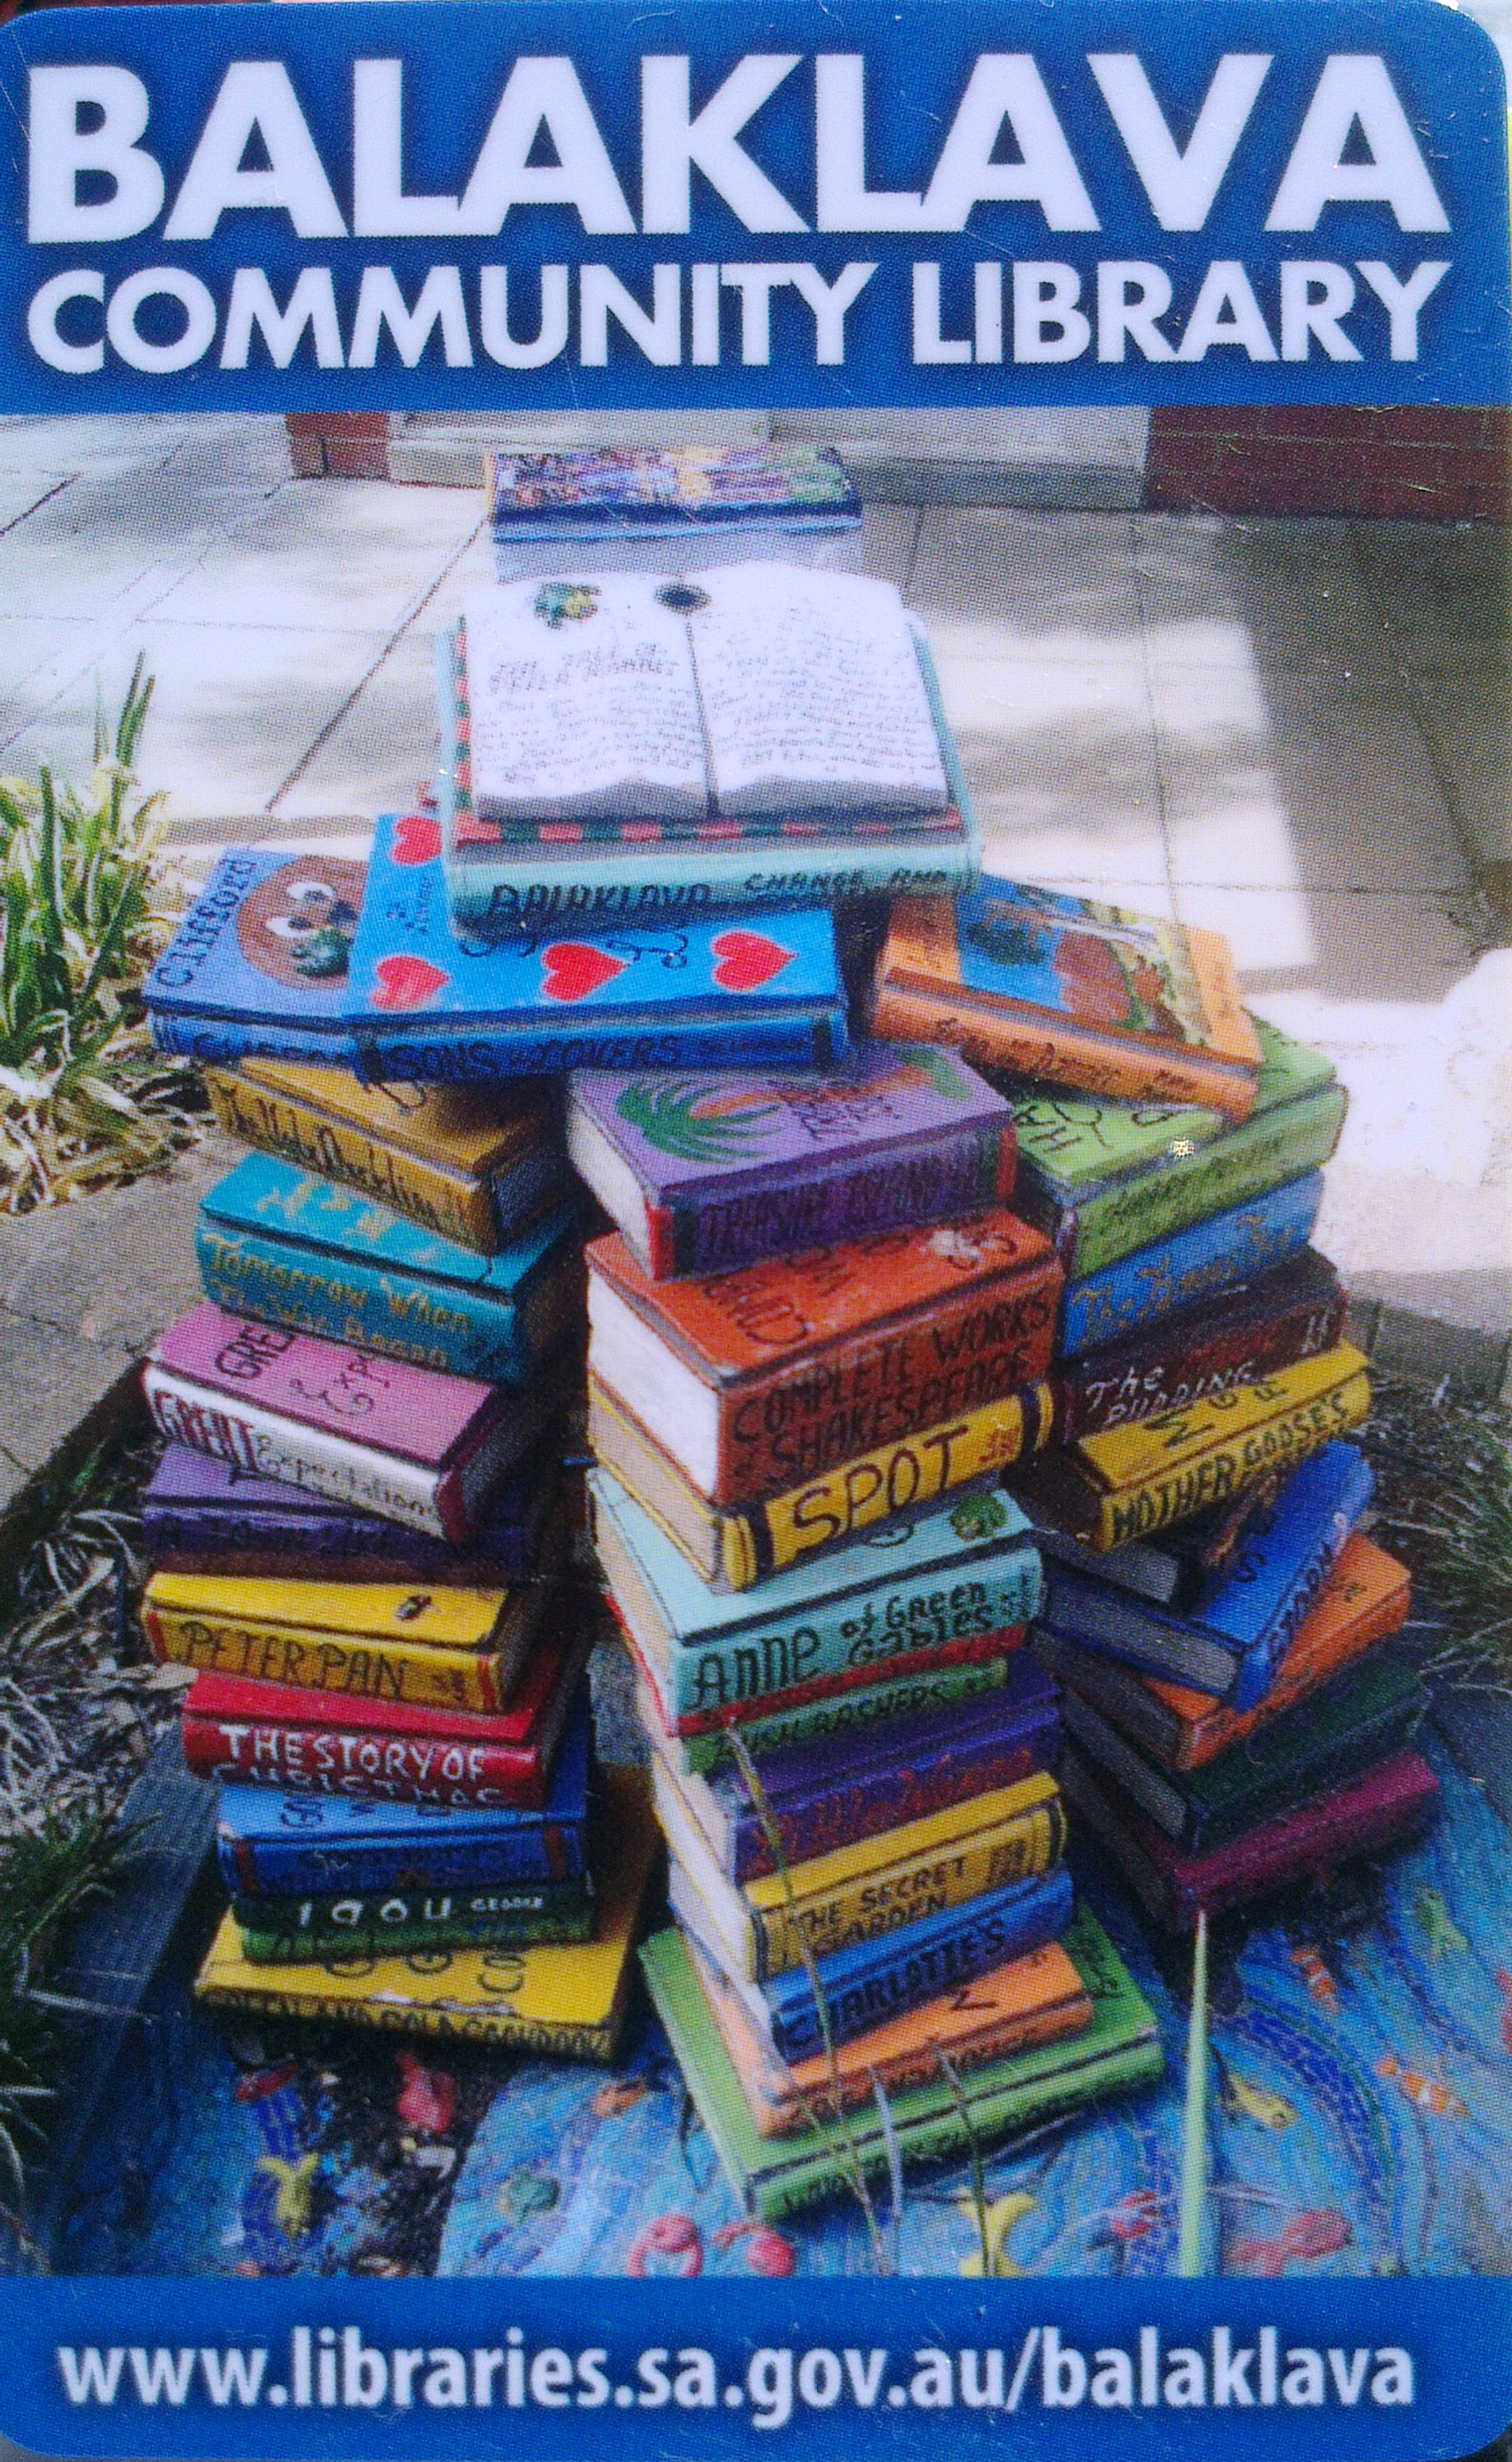 library borrowing card, one card network,balaklava, water feature make of colourful books, public sculpture